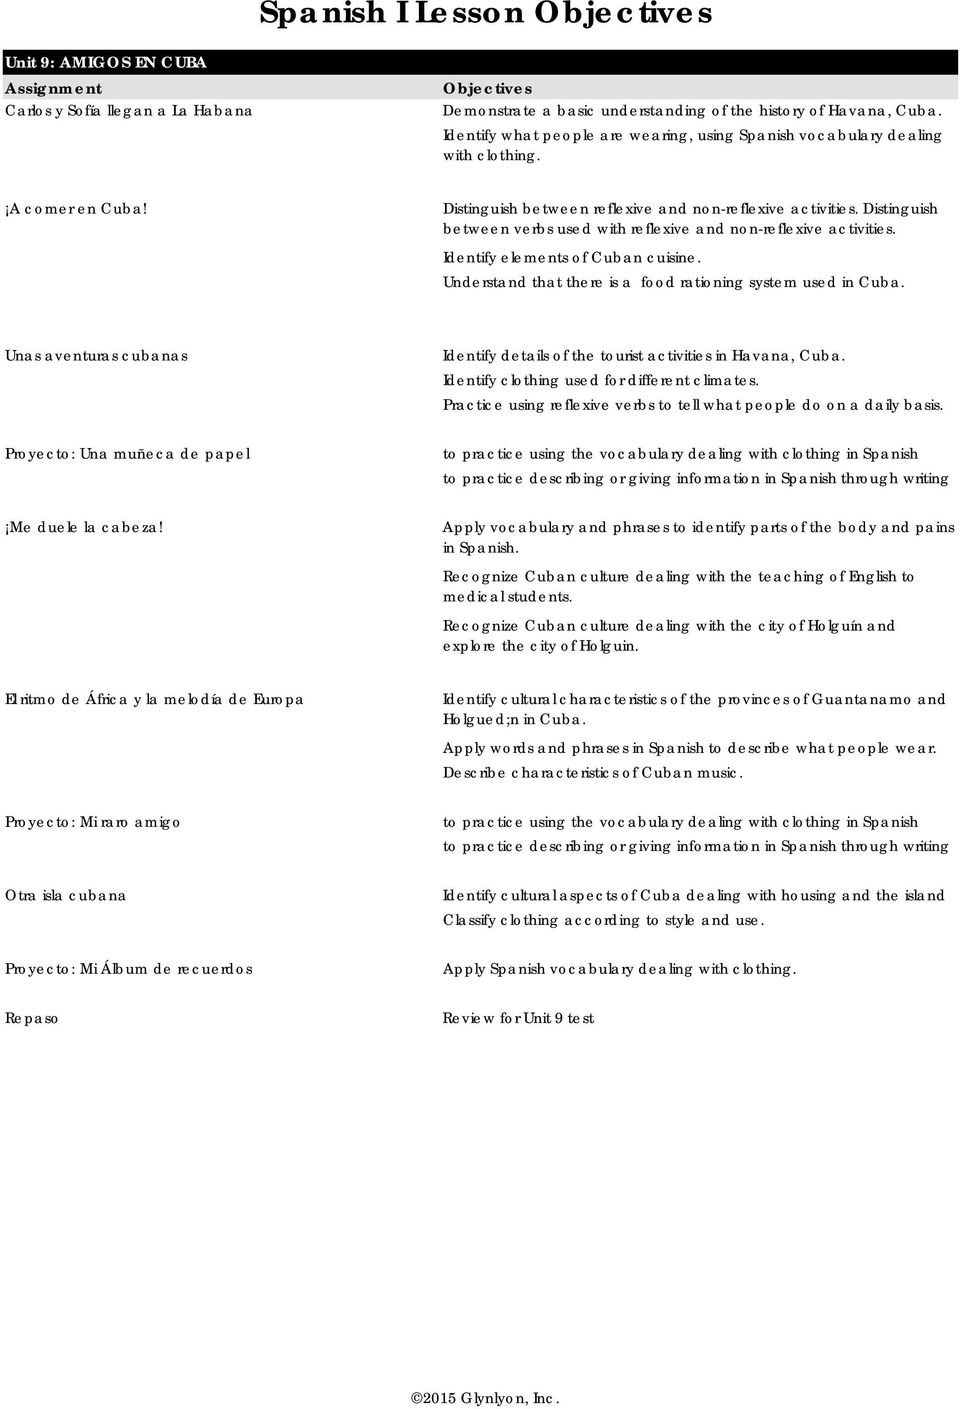 Spanish I Lesson Objectives - PDF